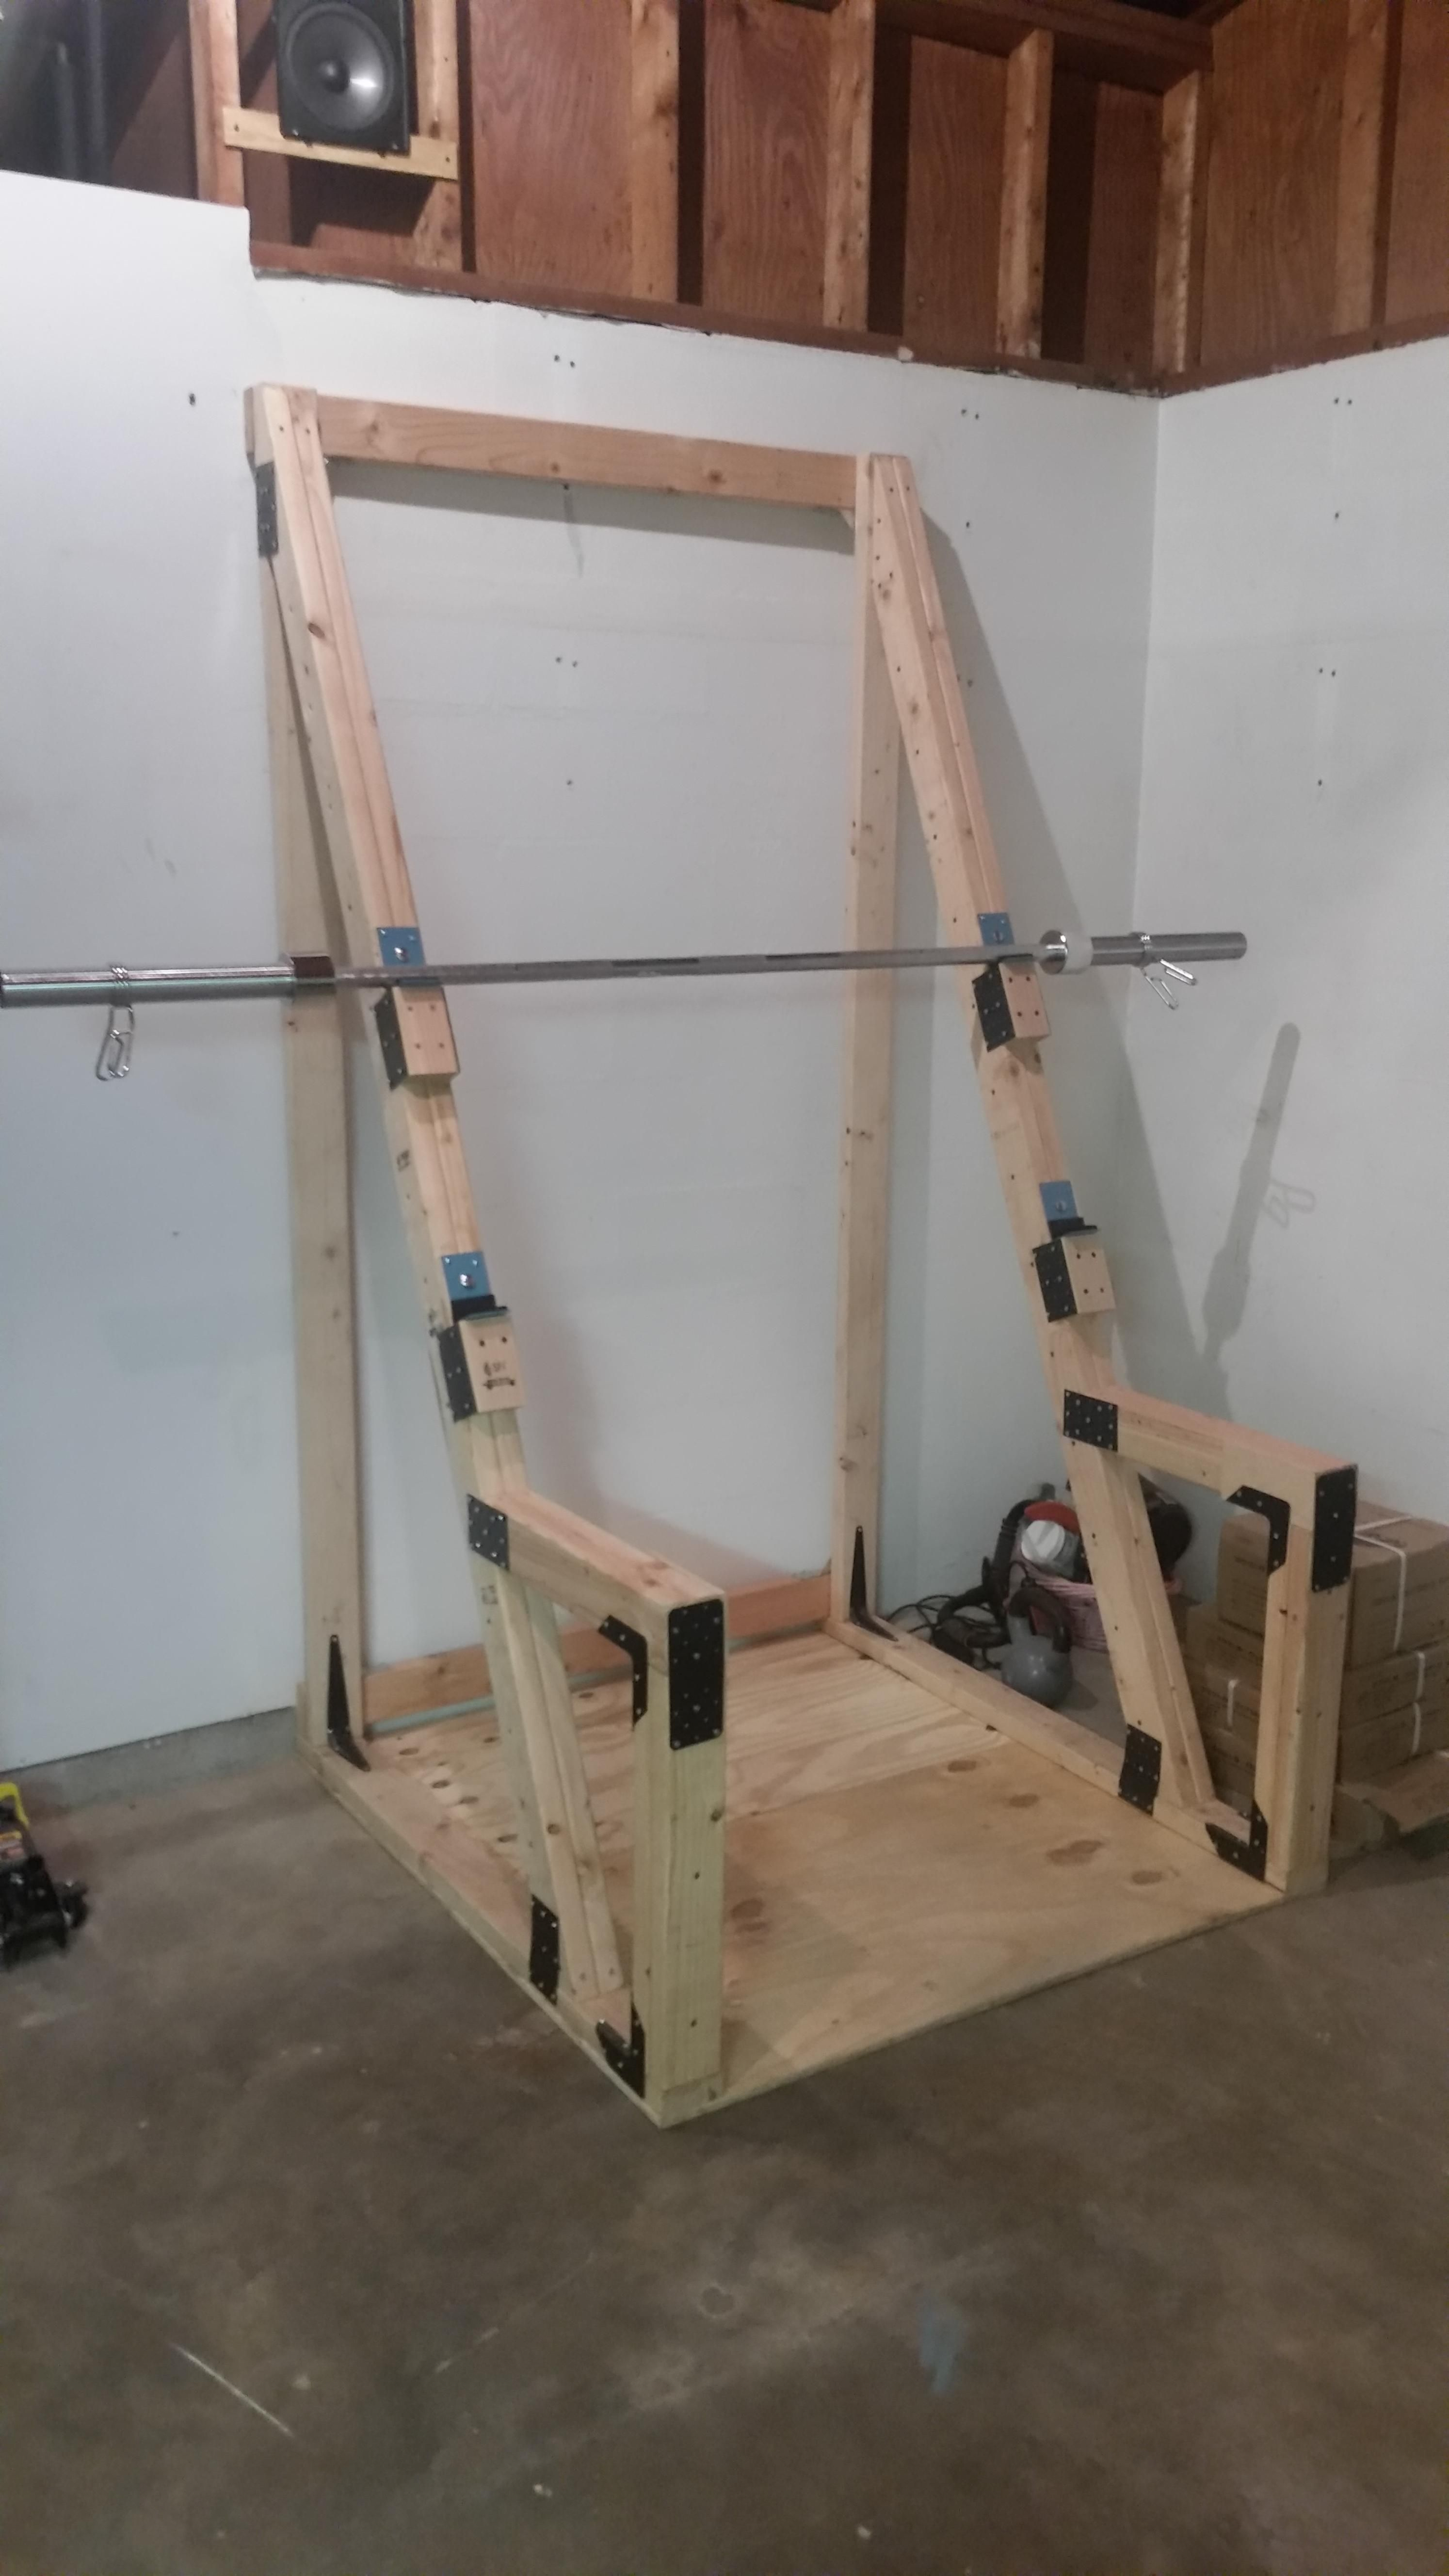 build know power own what of crossfit end you squat rack to three need wooden fitness equipment your